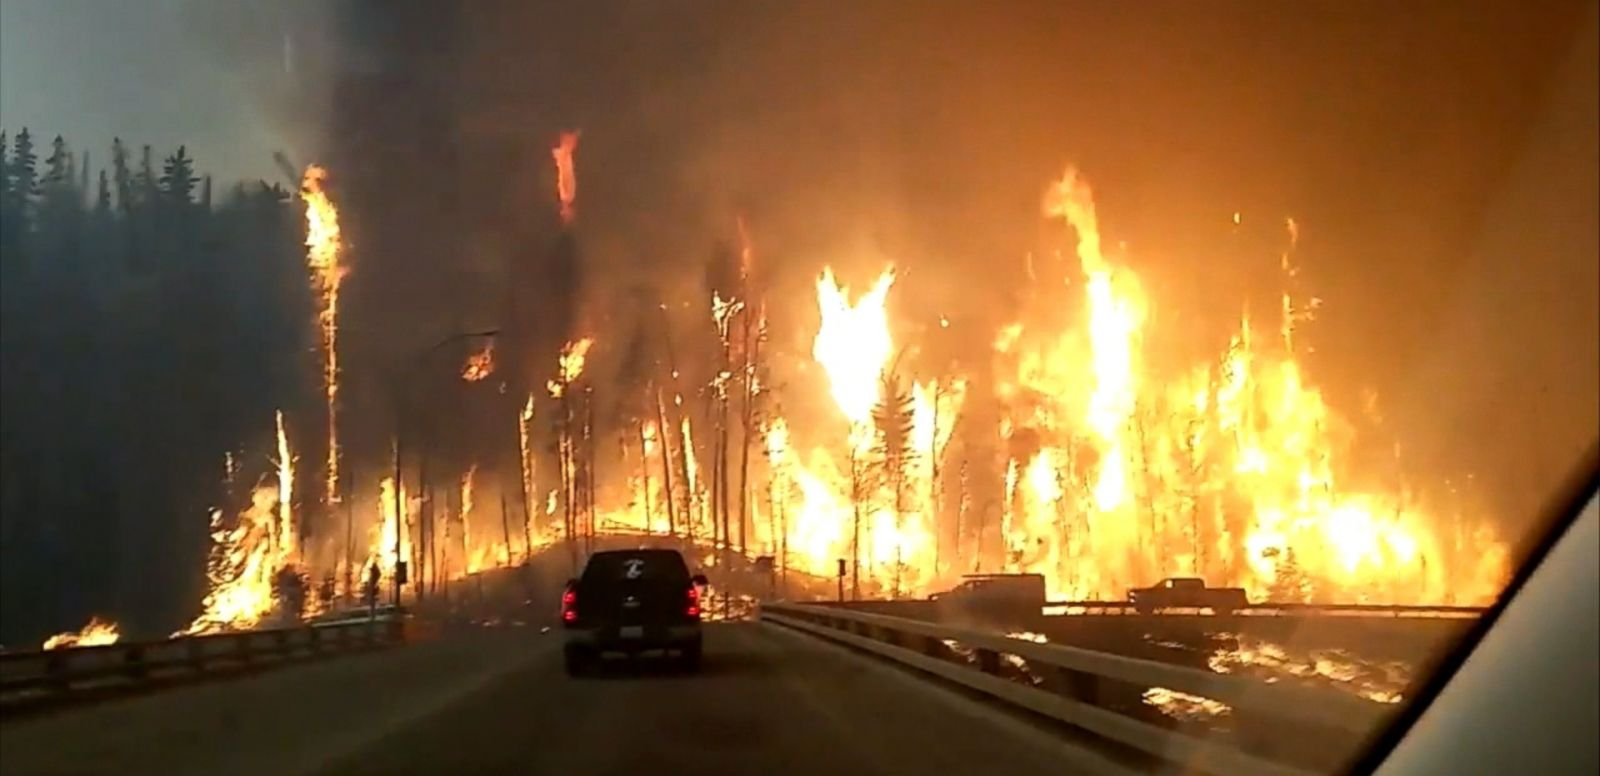 VIDEO: As wildfires continue to rage in Alberta, Canada, the provincial government has declared a state of emergency as two more communities prepared to evacuate overnight Wednesday.